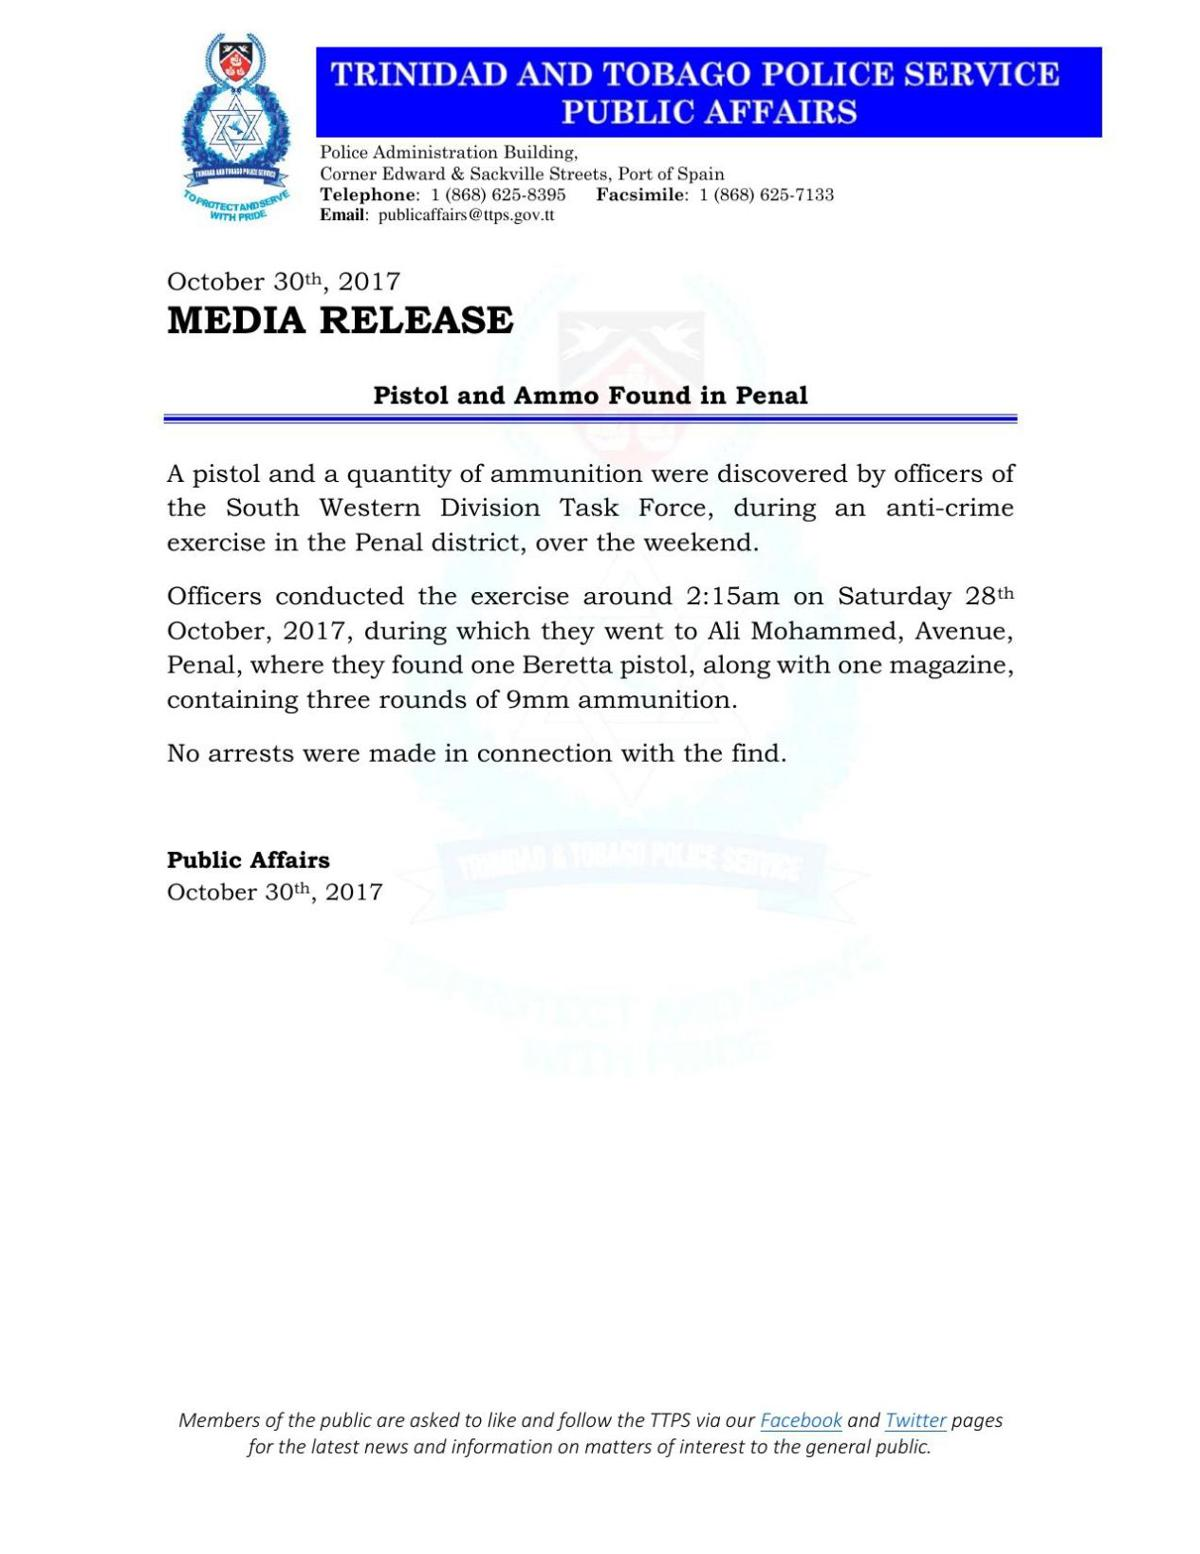 Media Release- Pistol and Ammo Found in Penal pdf | | tv6tnt com